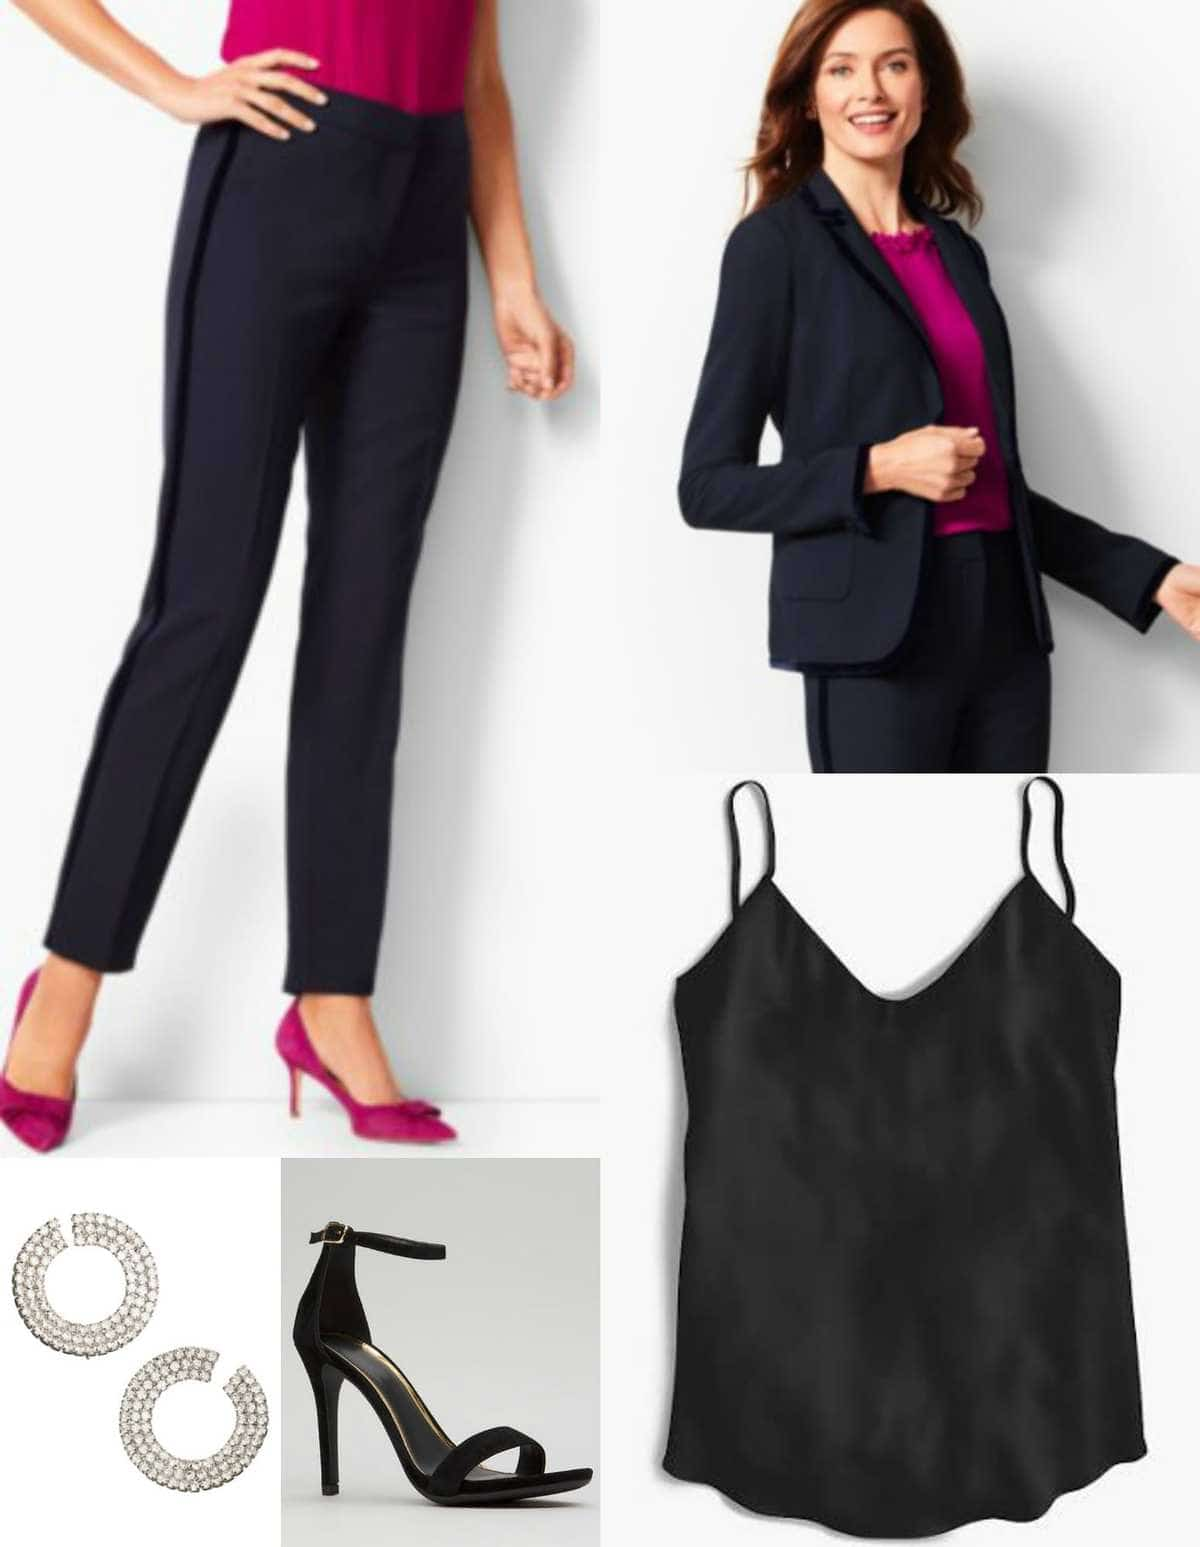 Talbots navy velvet trimmed pantsuit with black camisole and heels